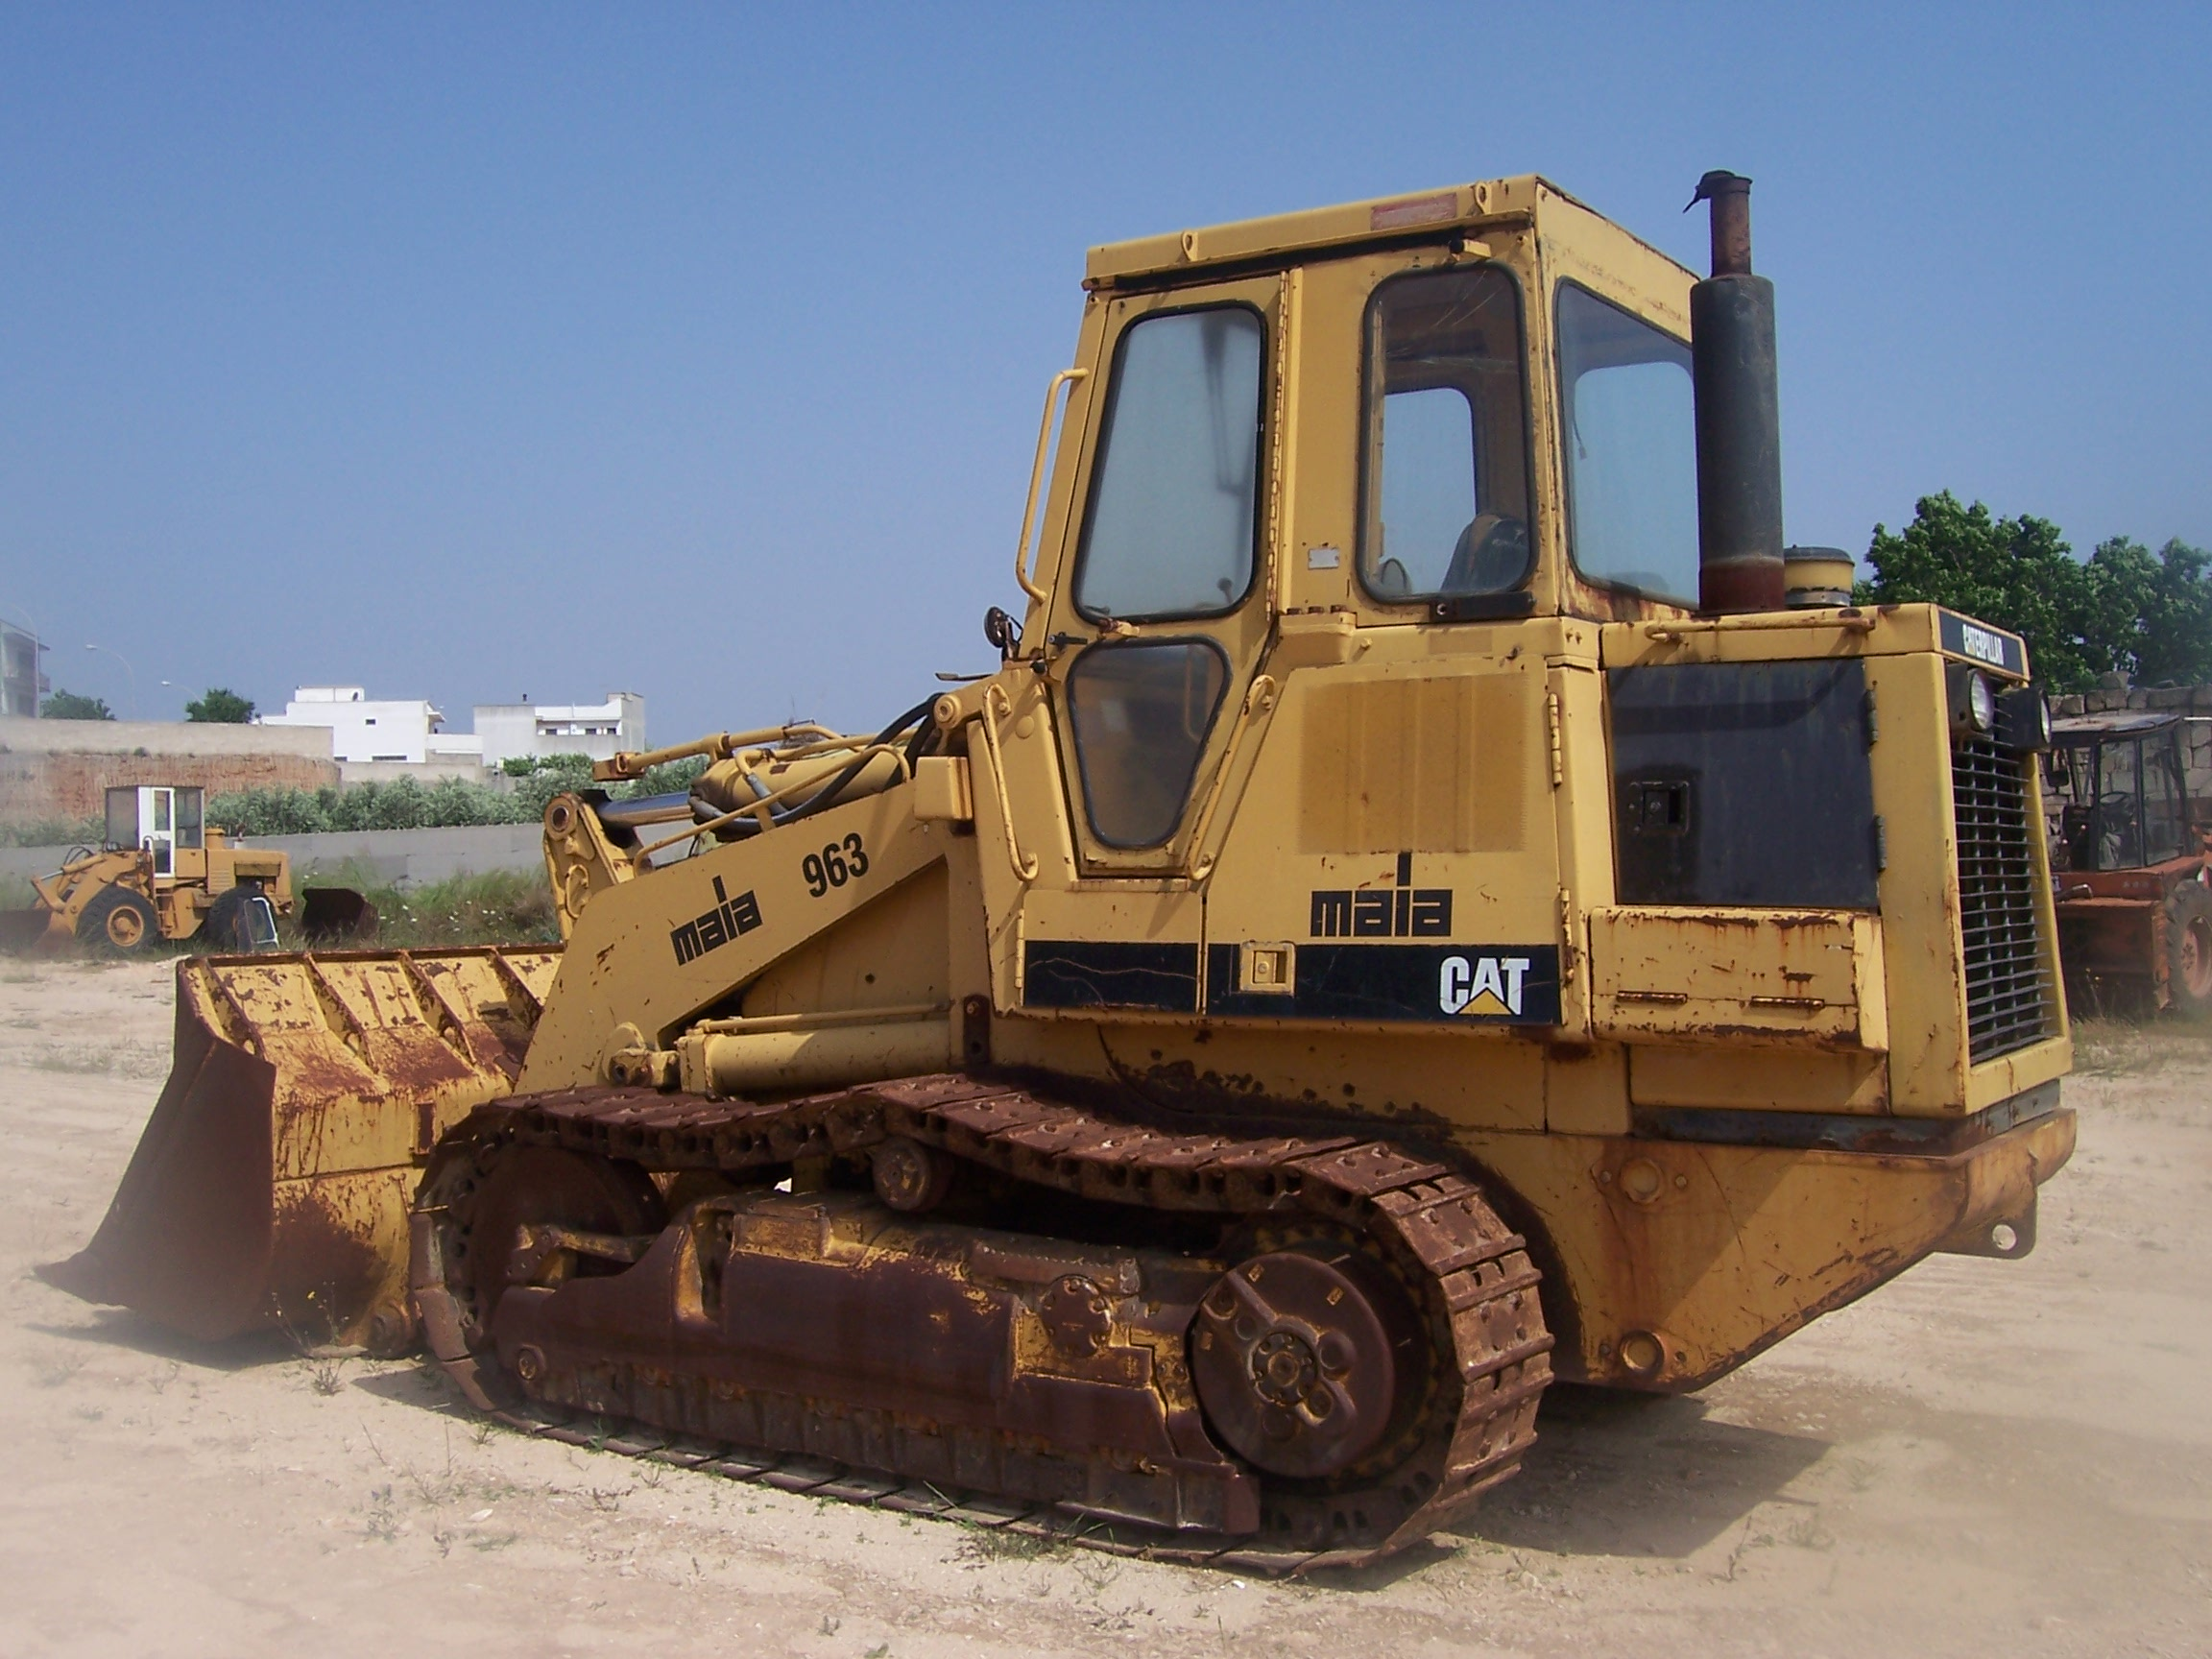 CATERPILLAR CAT 963